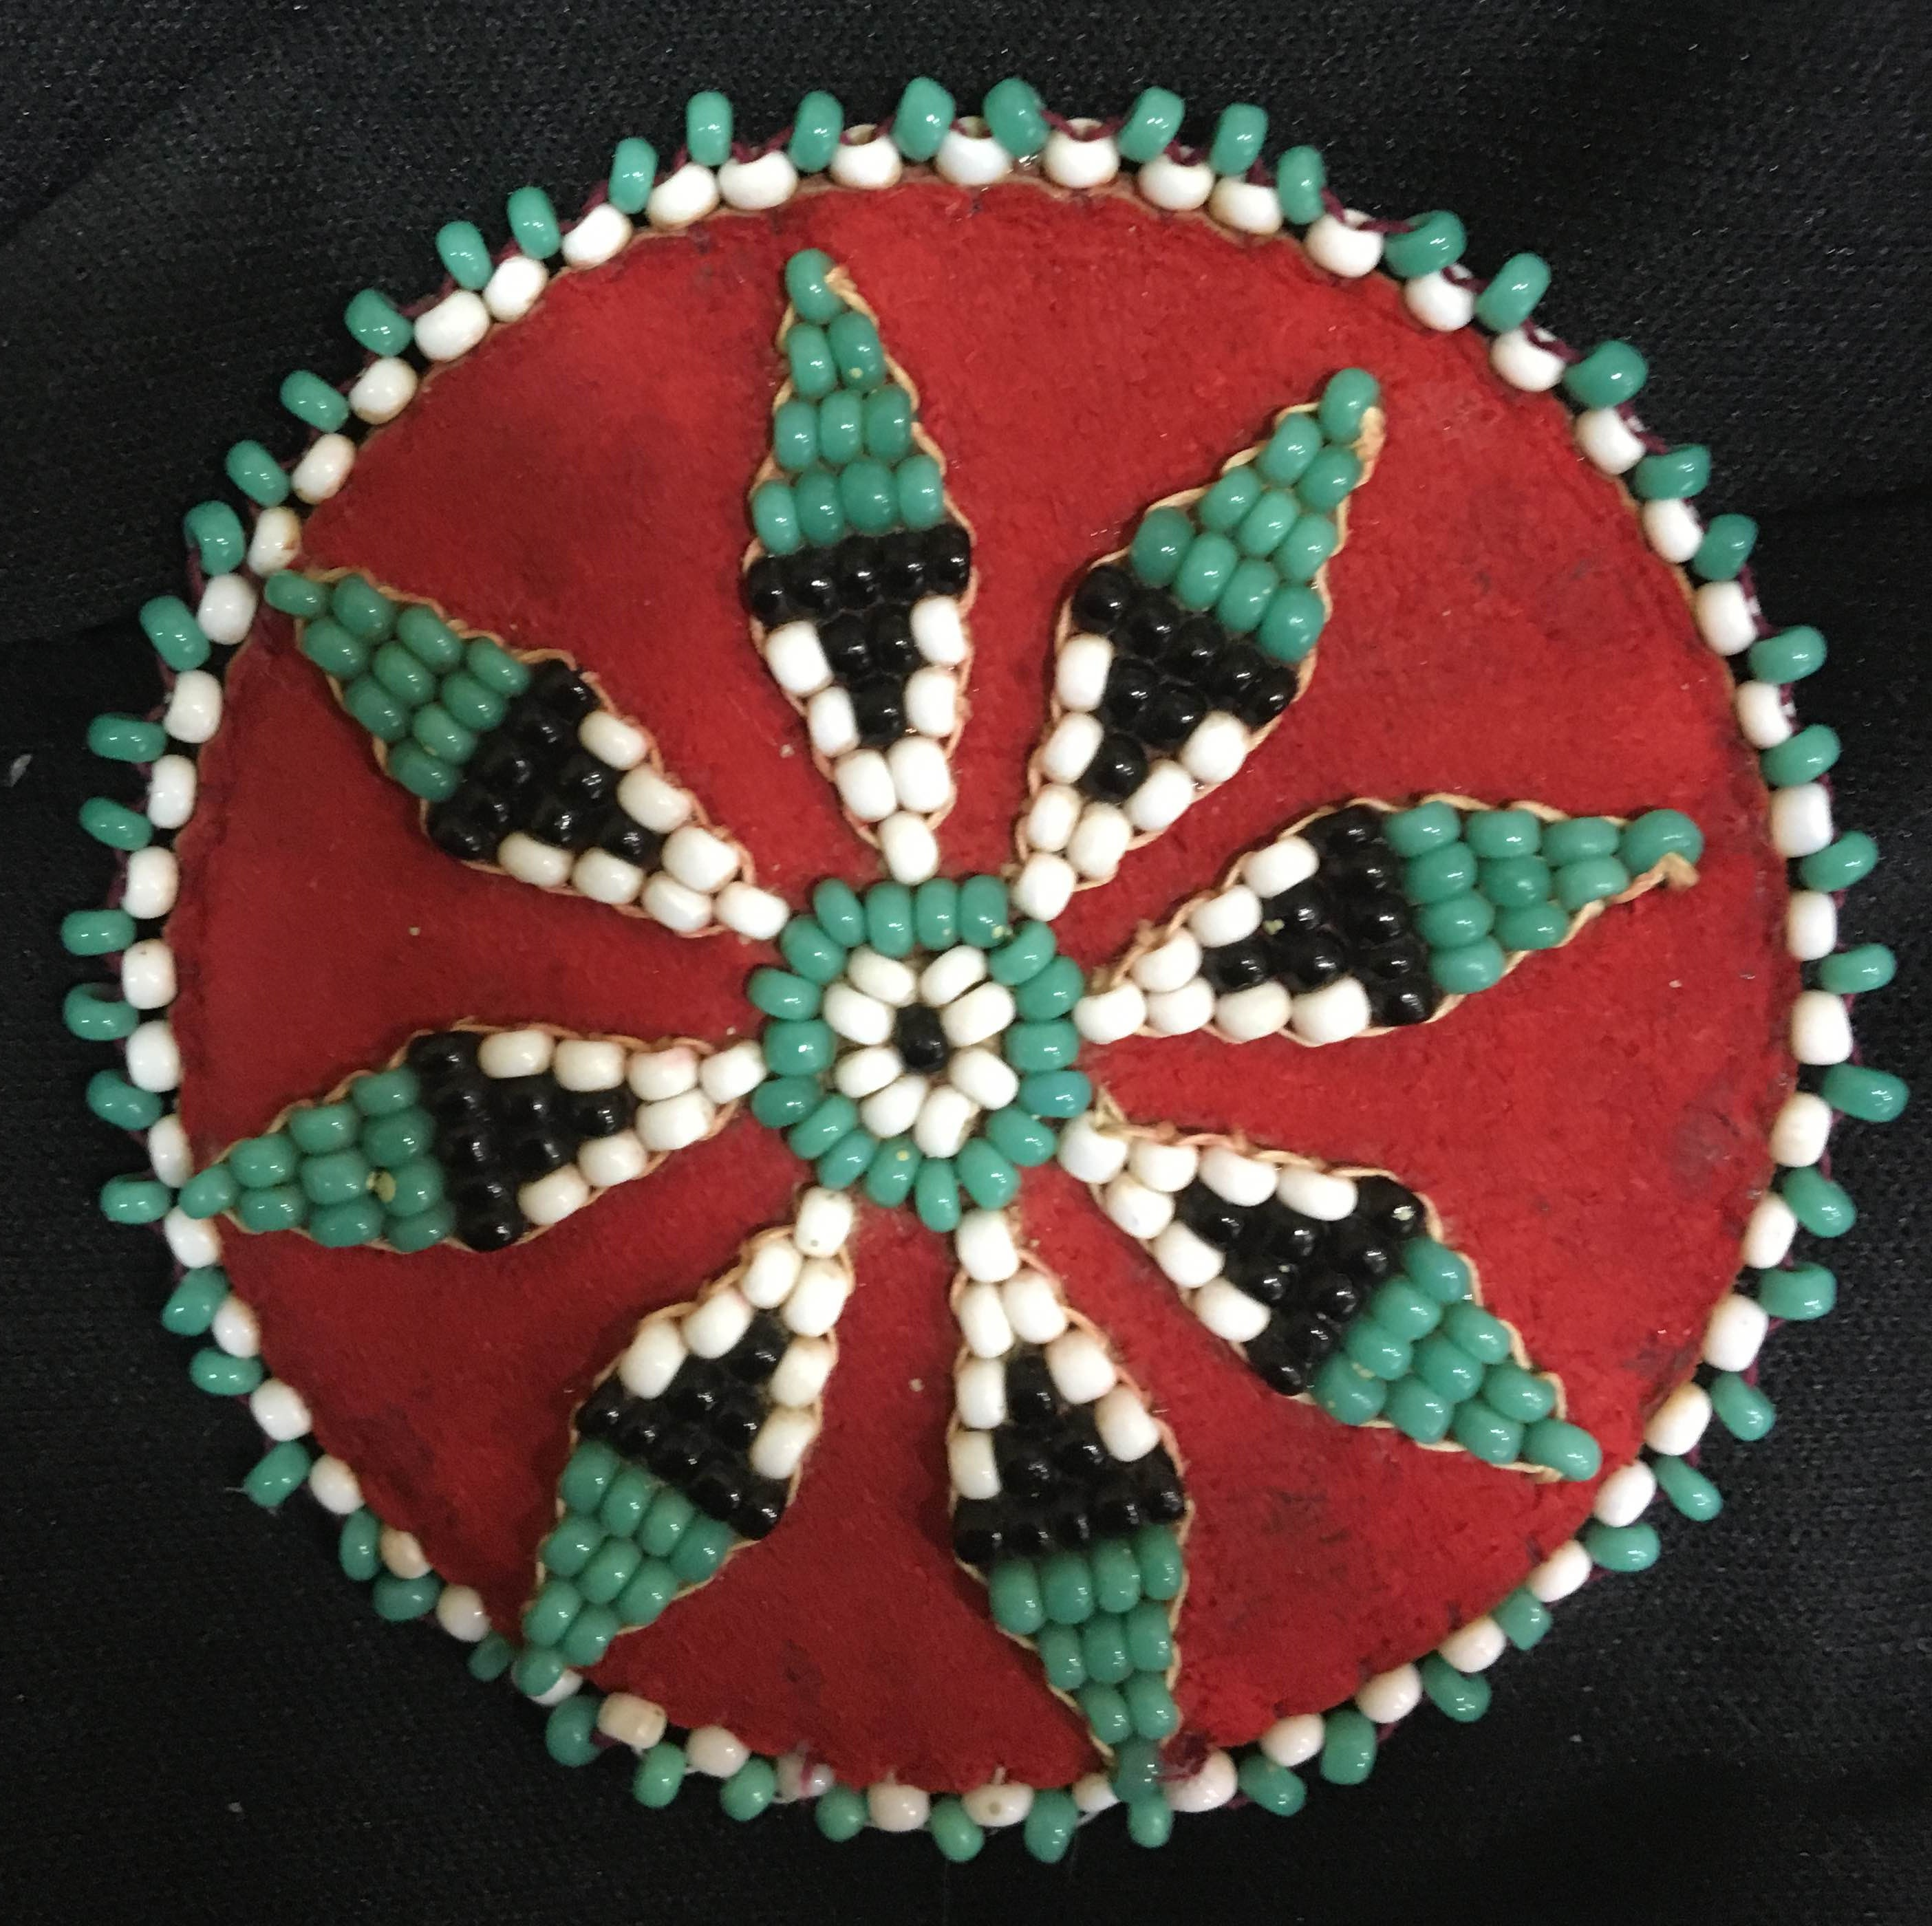 Native American Beaded Rosettes Researched and Conserved by Amanda Flavin